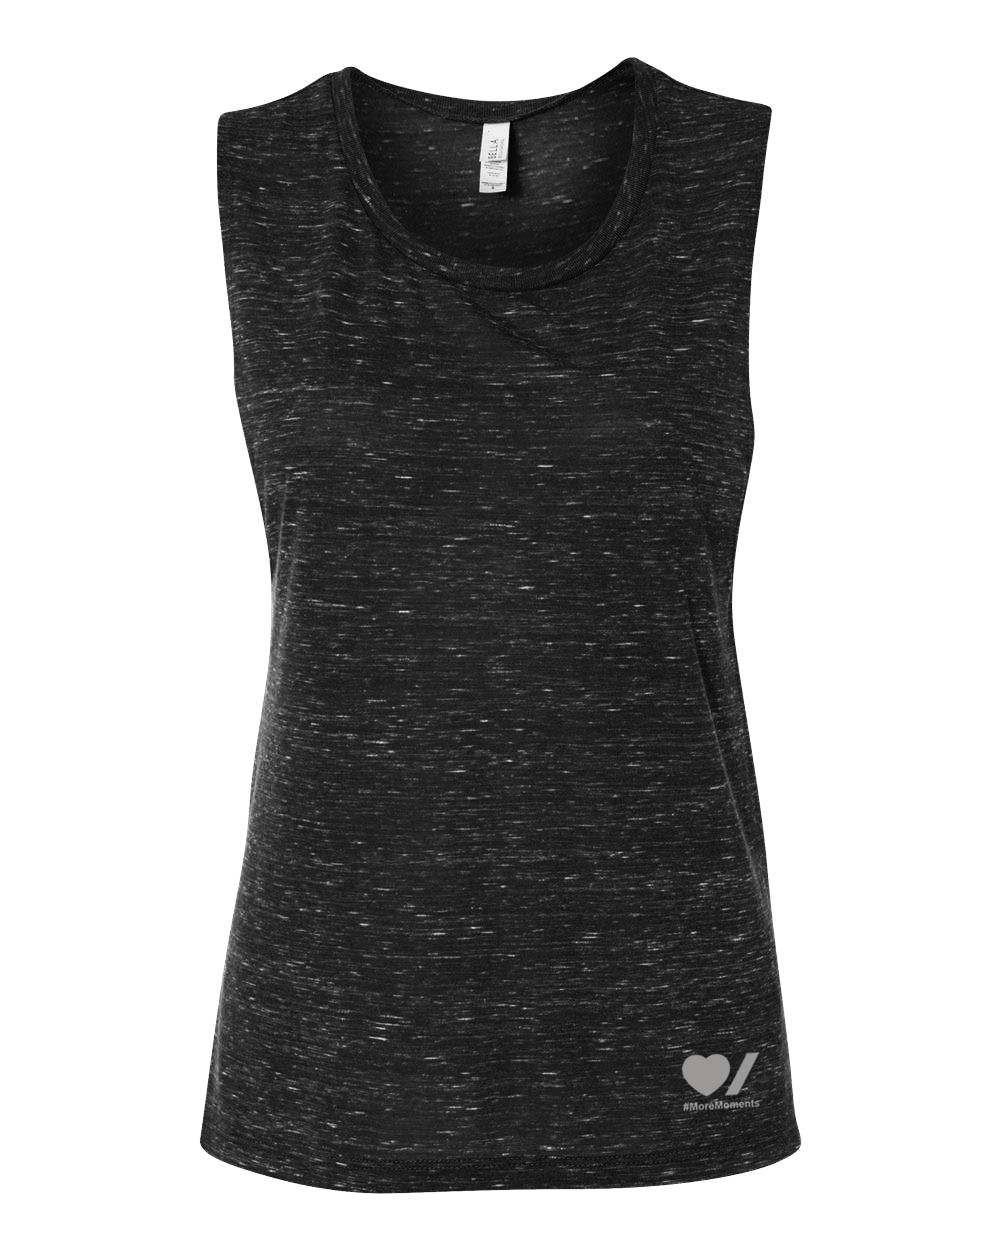 Heart & Stroke Limited Edition MoreMoments Women's Muscle Tank